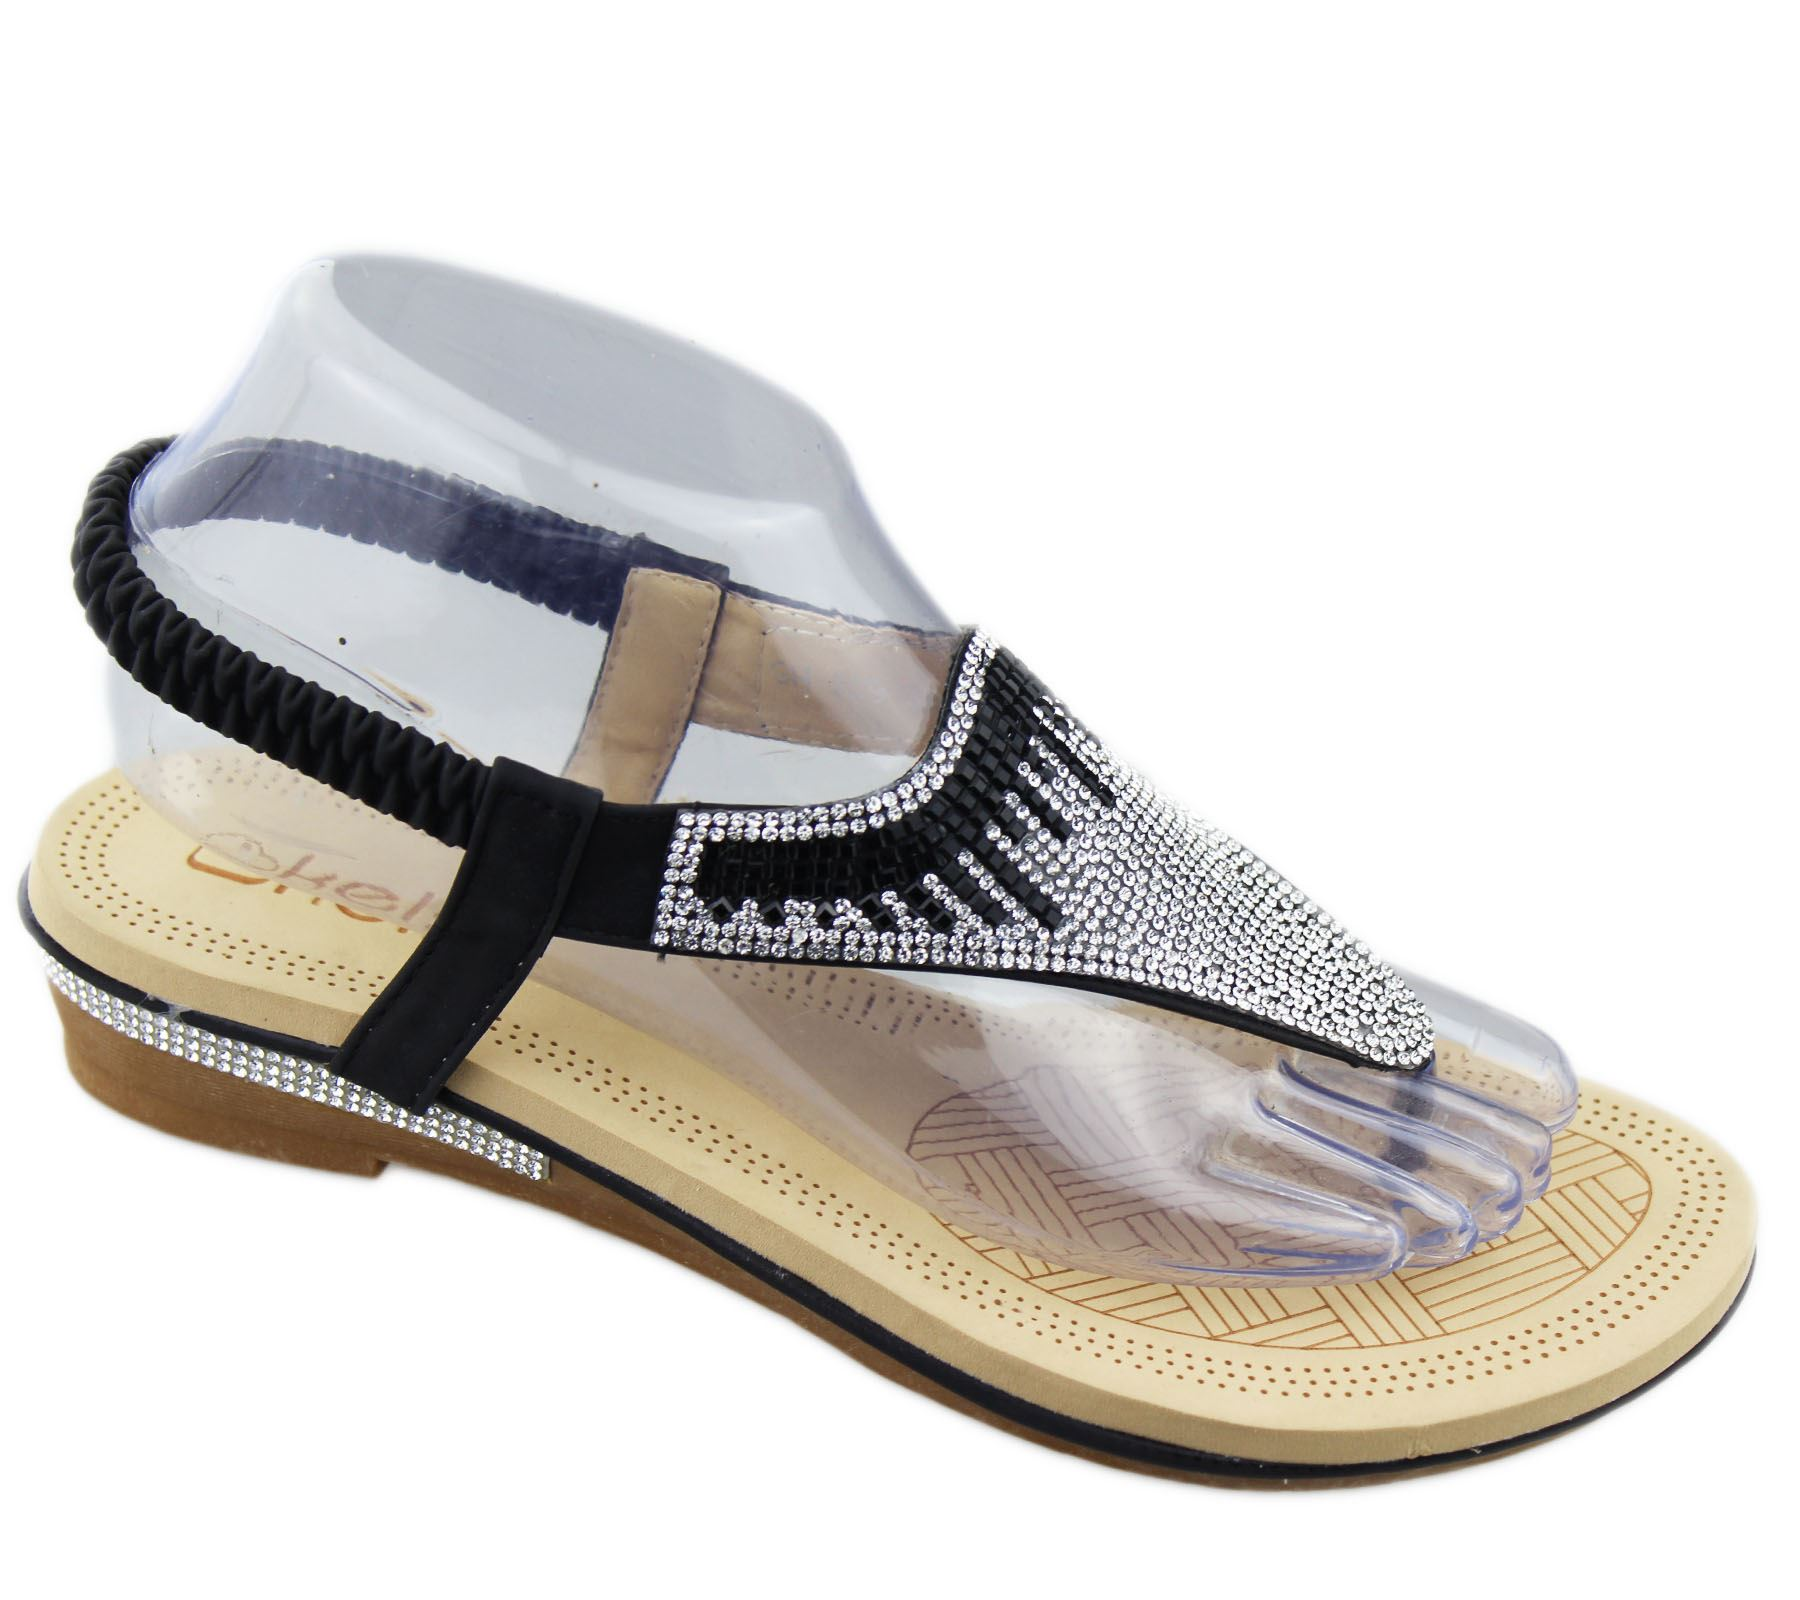 For Mens Accessories C 1_13